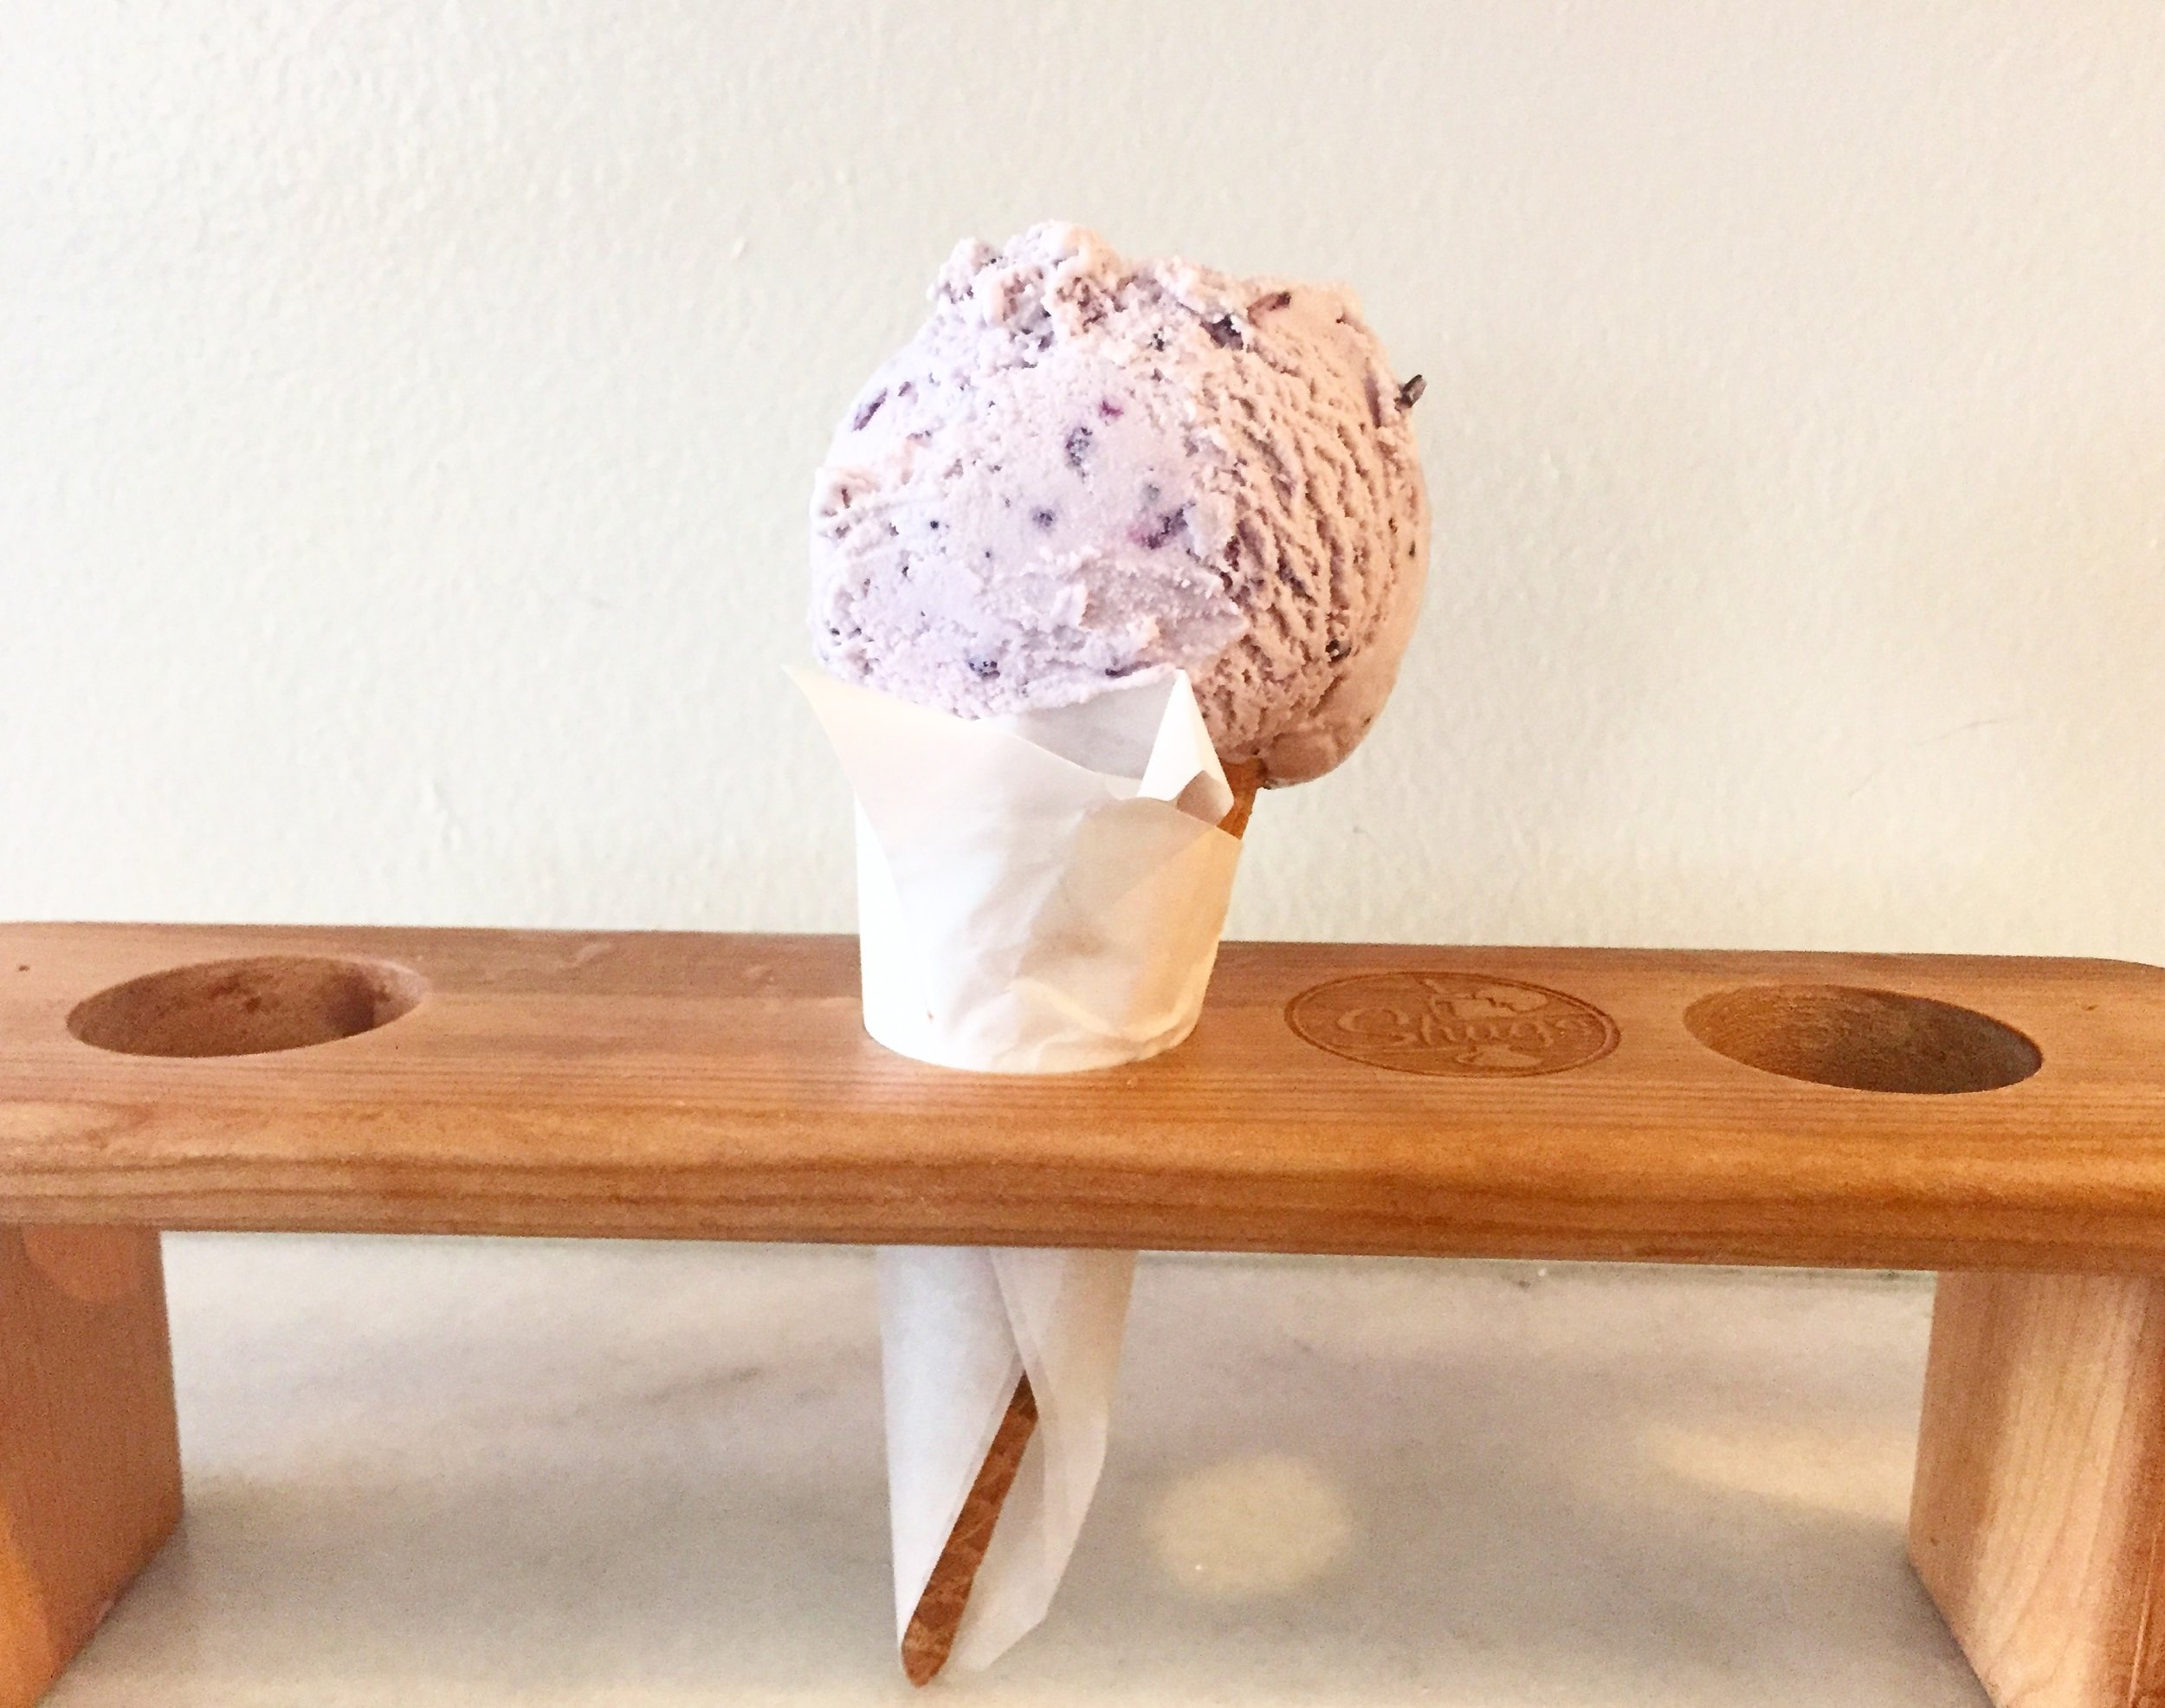 Huckleberry ice cream from Shug's - purple, creamy, mouthwatering goodness.